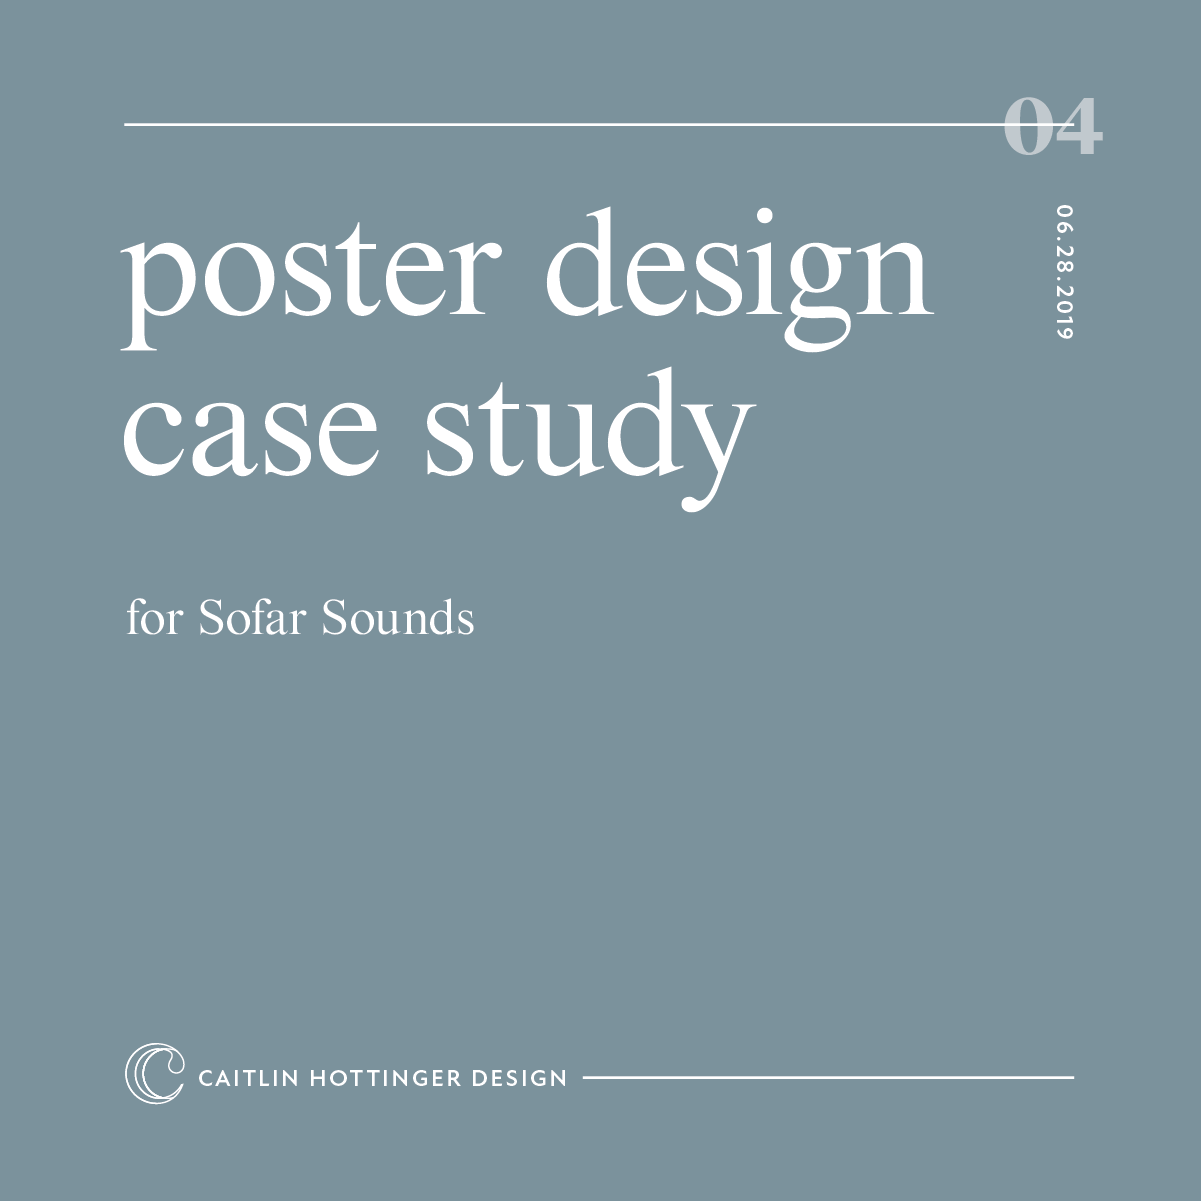 poster case study caitlin hottinger design blog